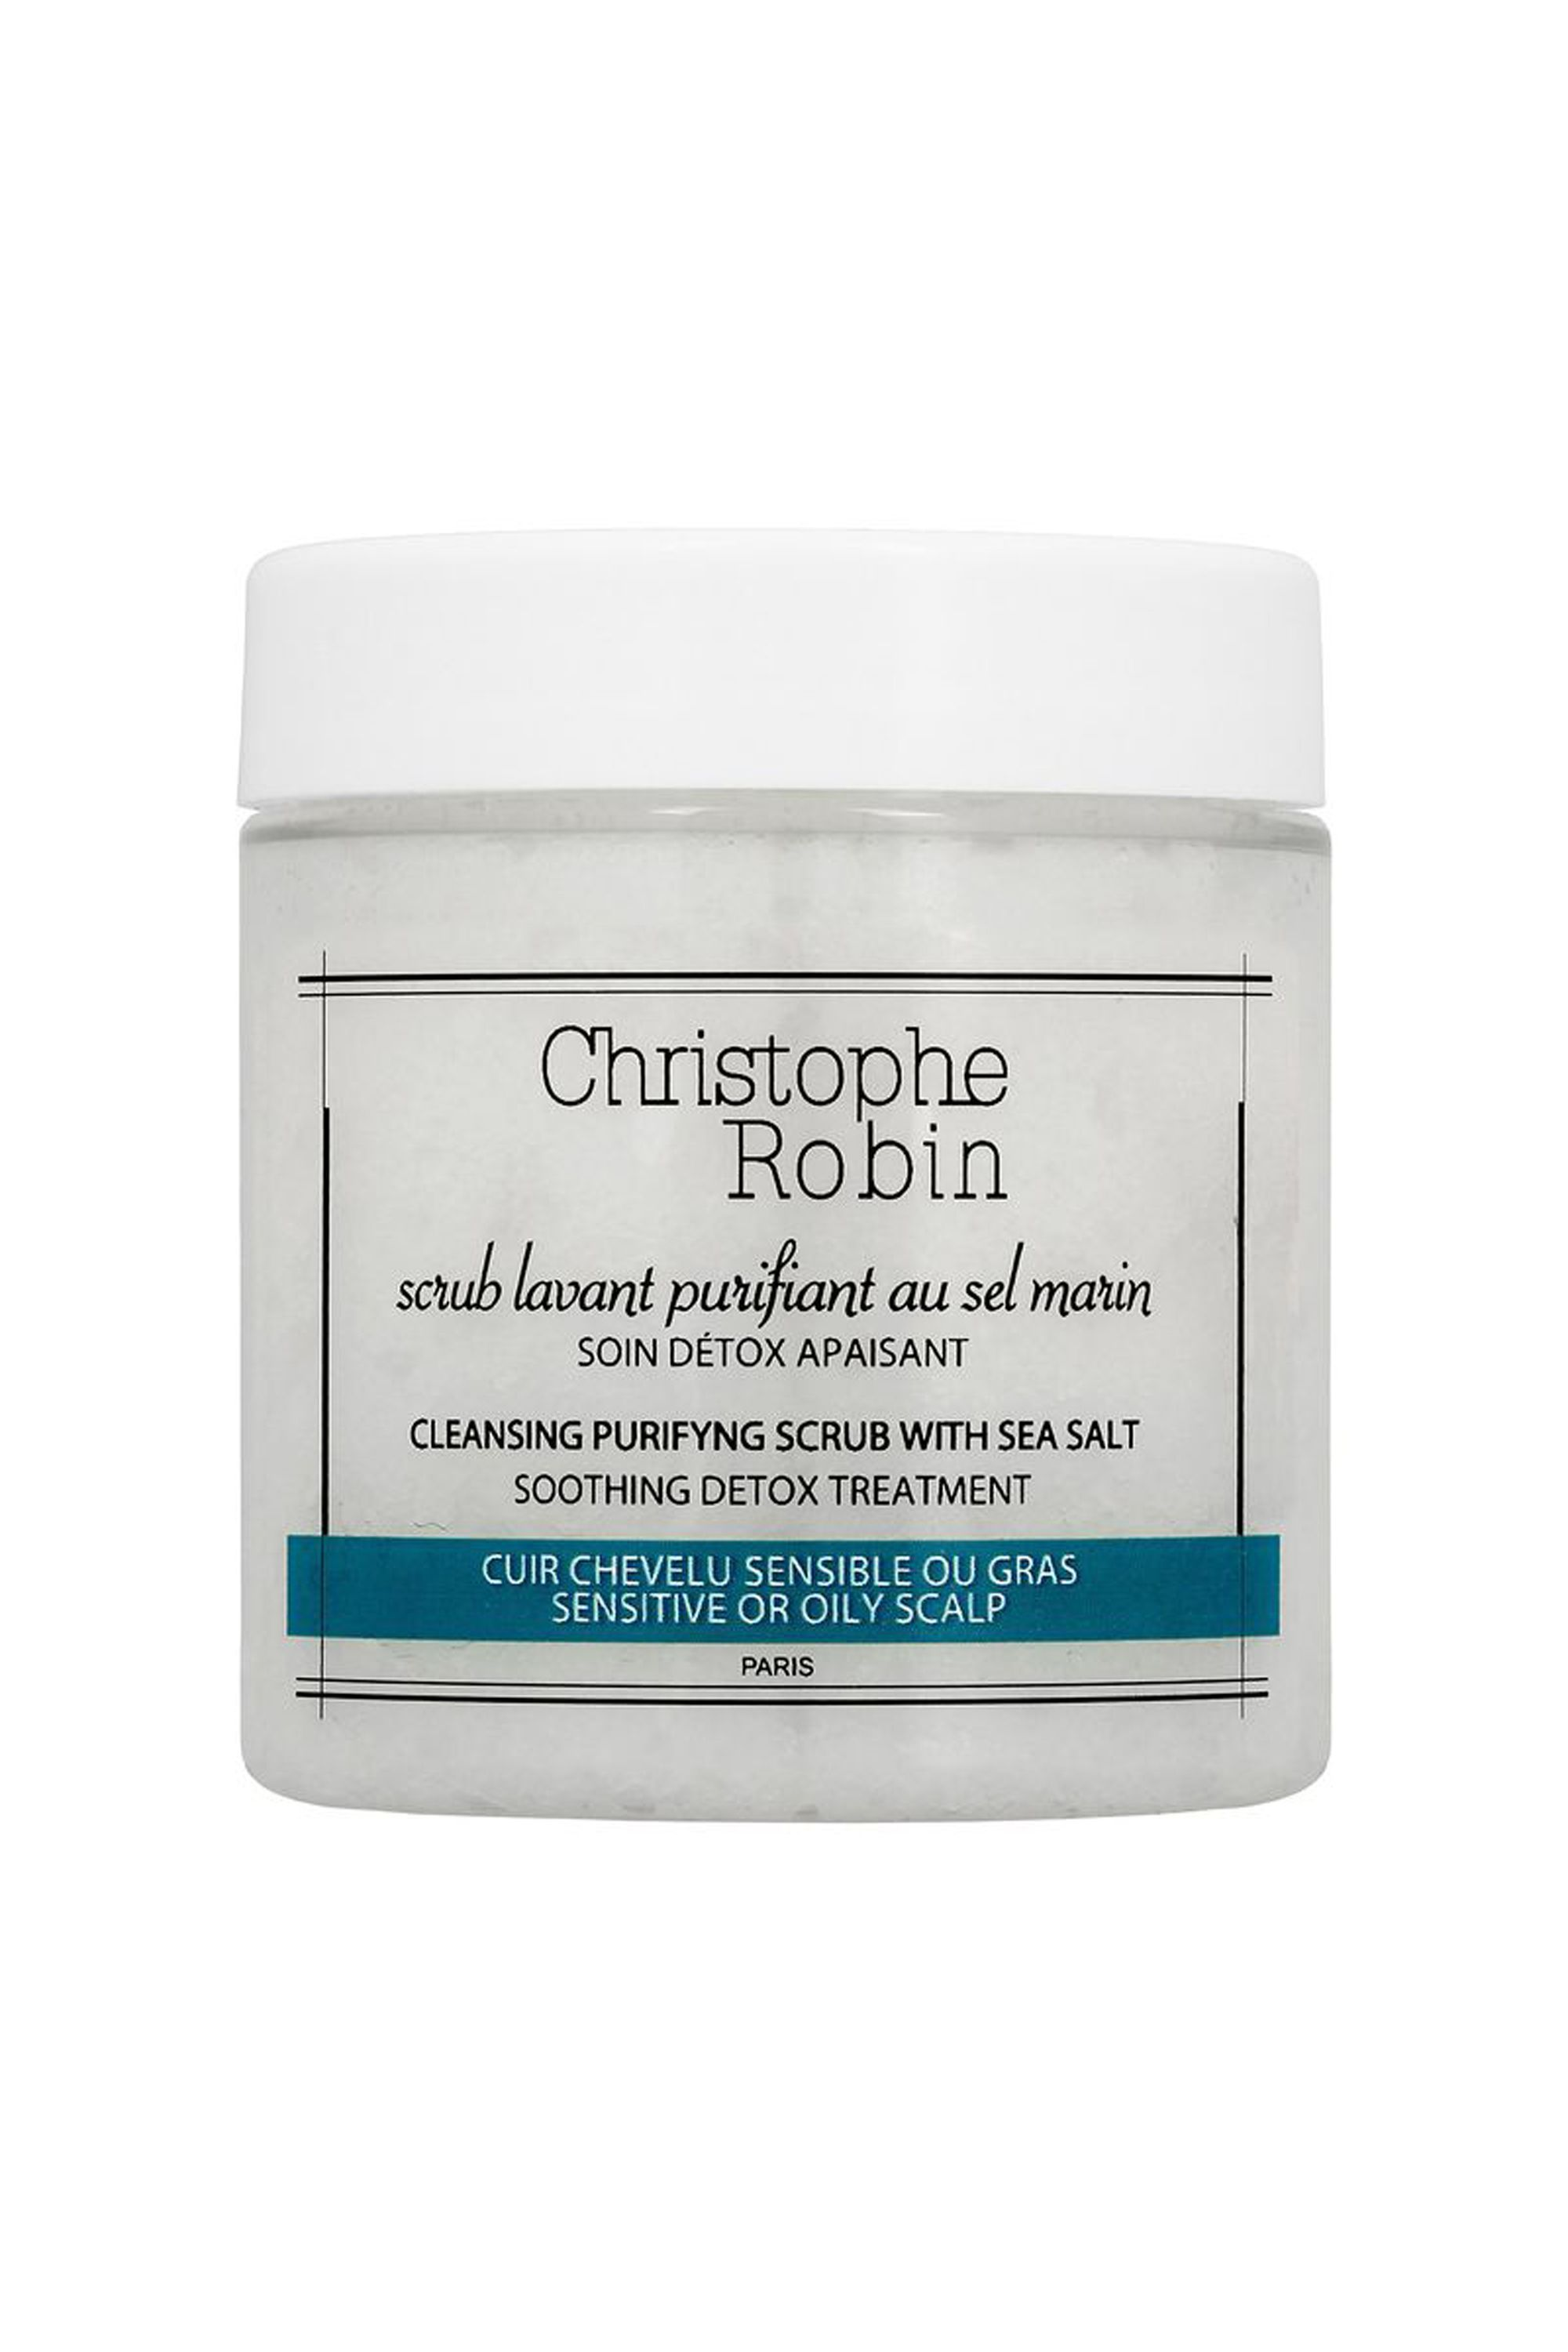 If You Have an Itchy, Irritated Scalp